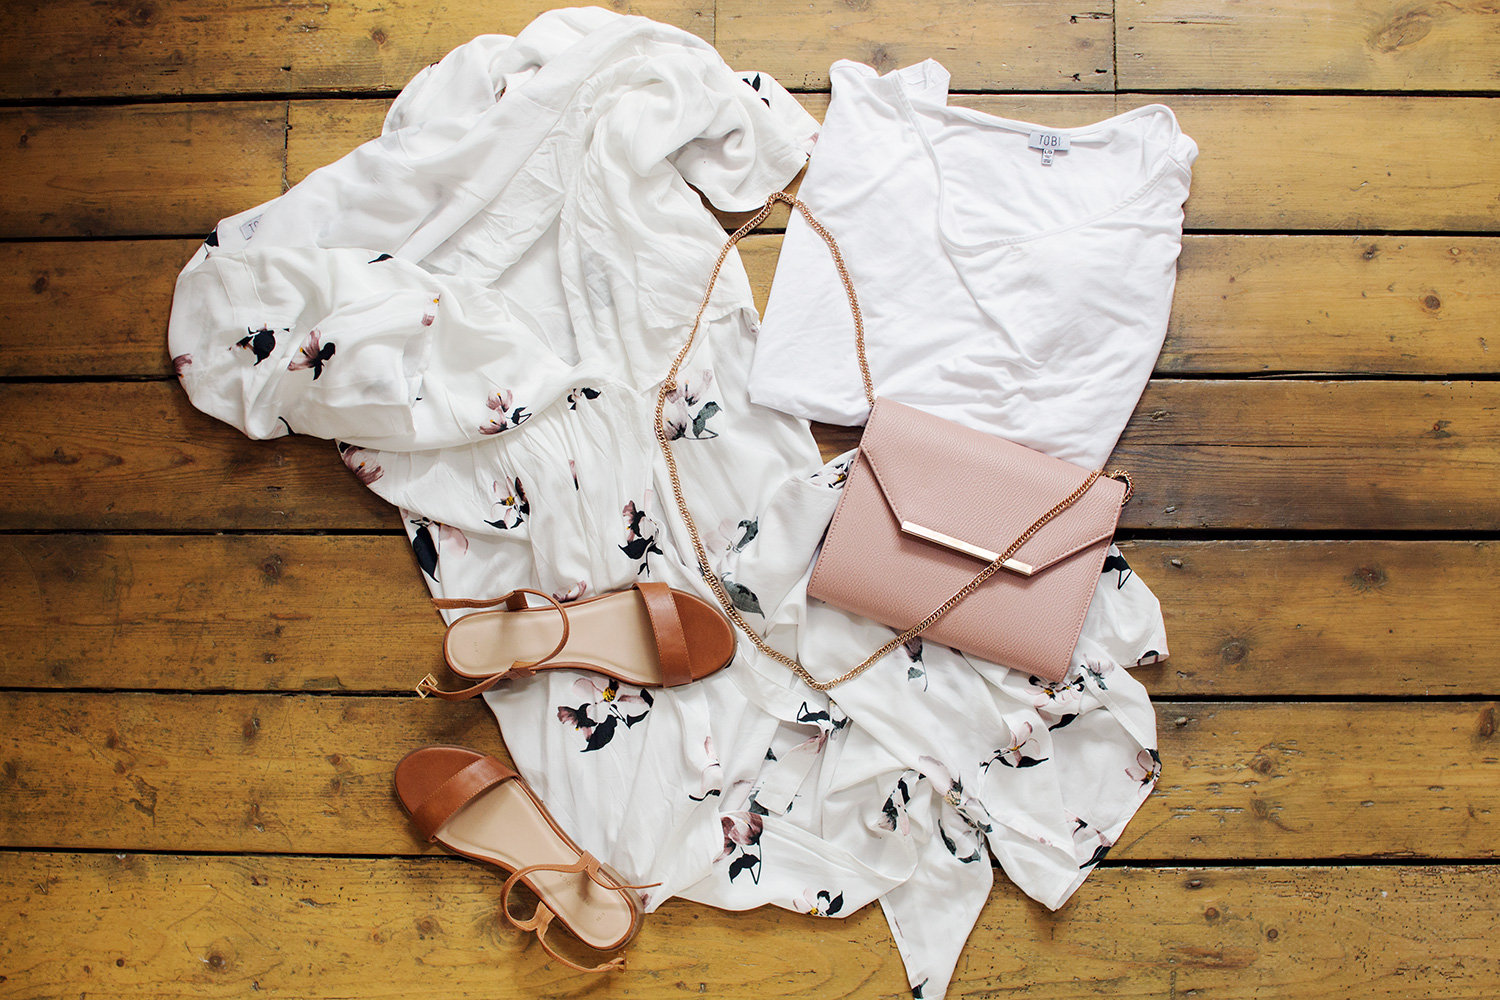 Fashion flatlay with summer dress, white t-shirt, sandals and pink bag on floorboards